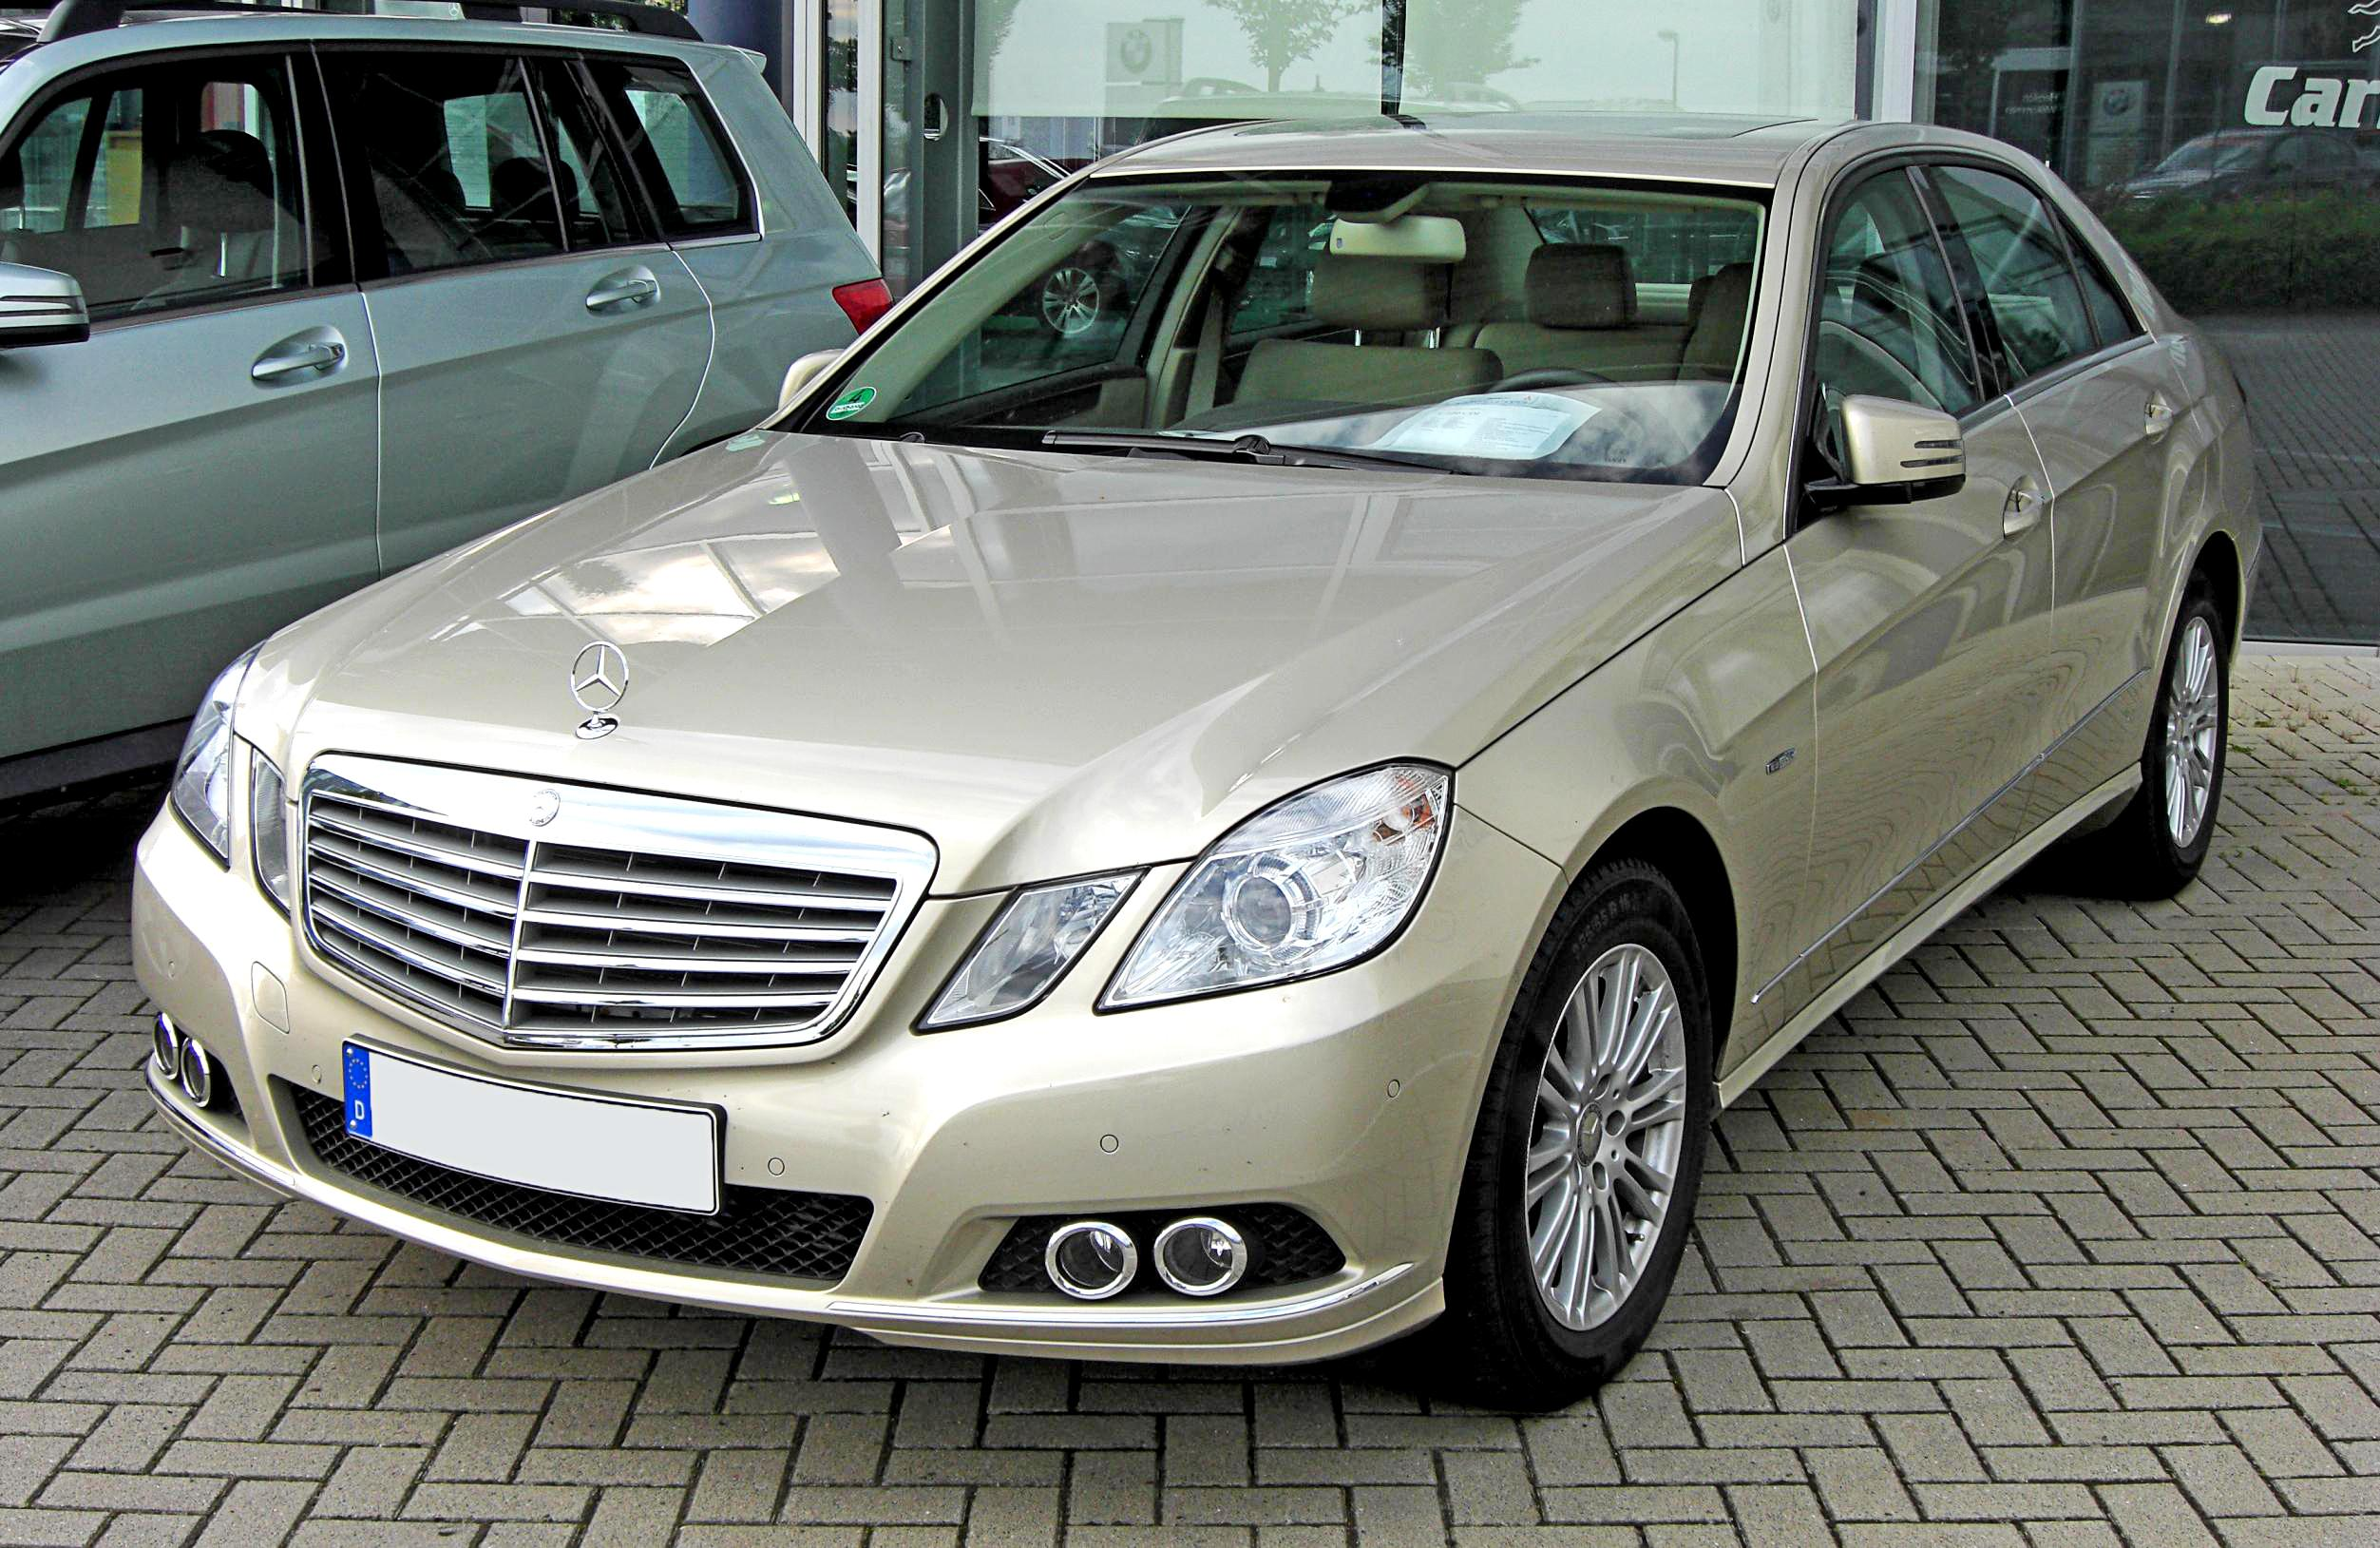 Can i change fog lamp to daylight w212 mercedes benz forum for Mercedes benz forum